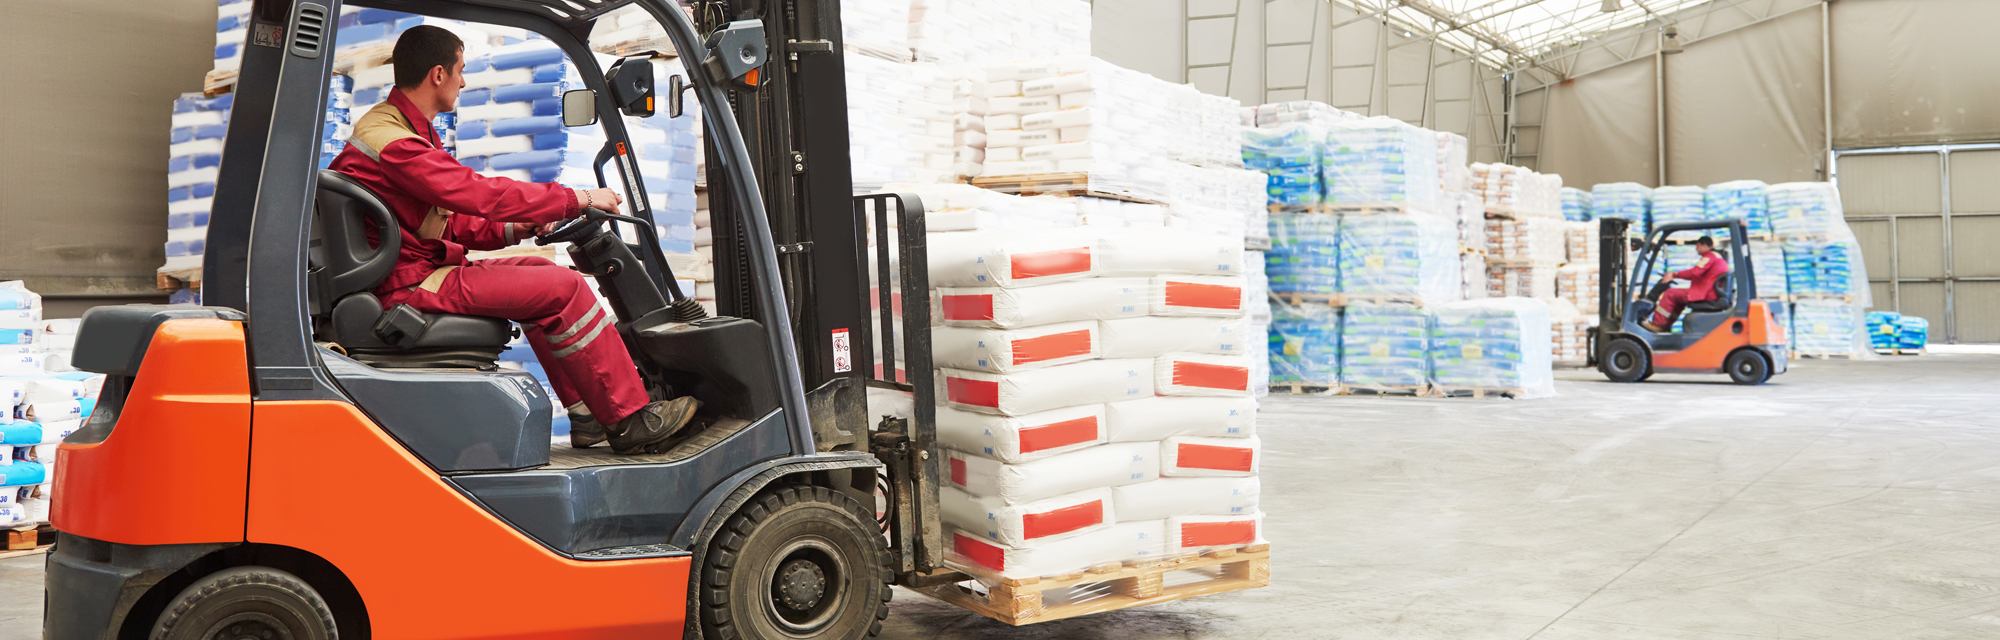 Forklift Operator Moving Cargo